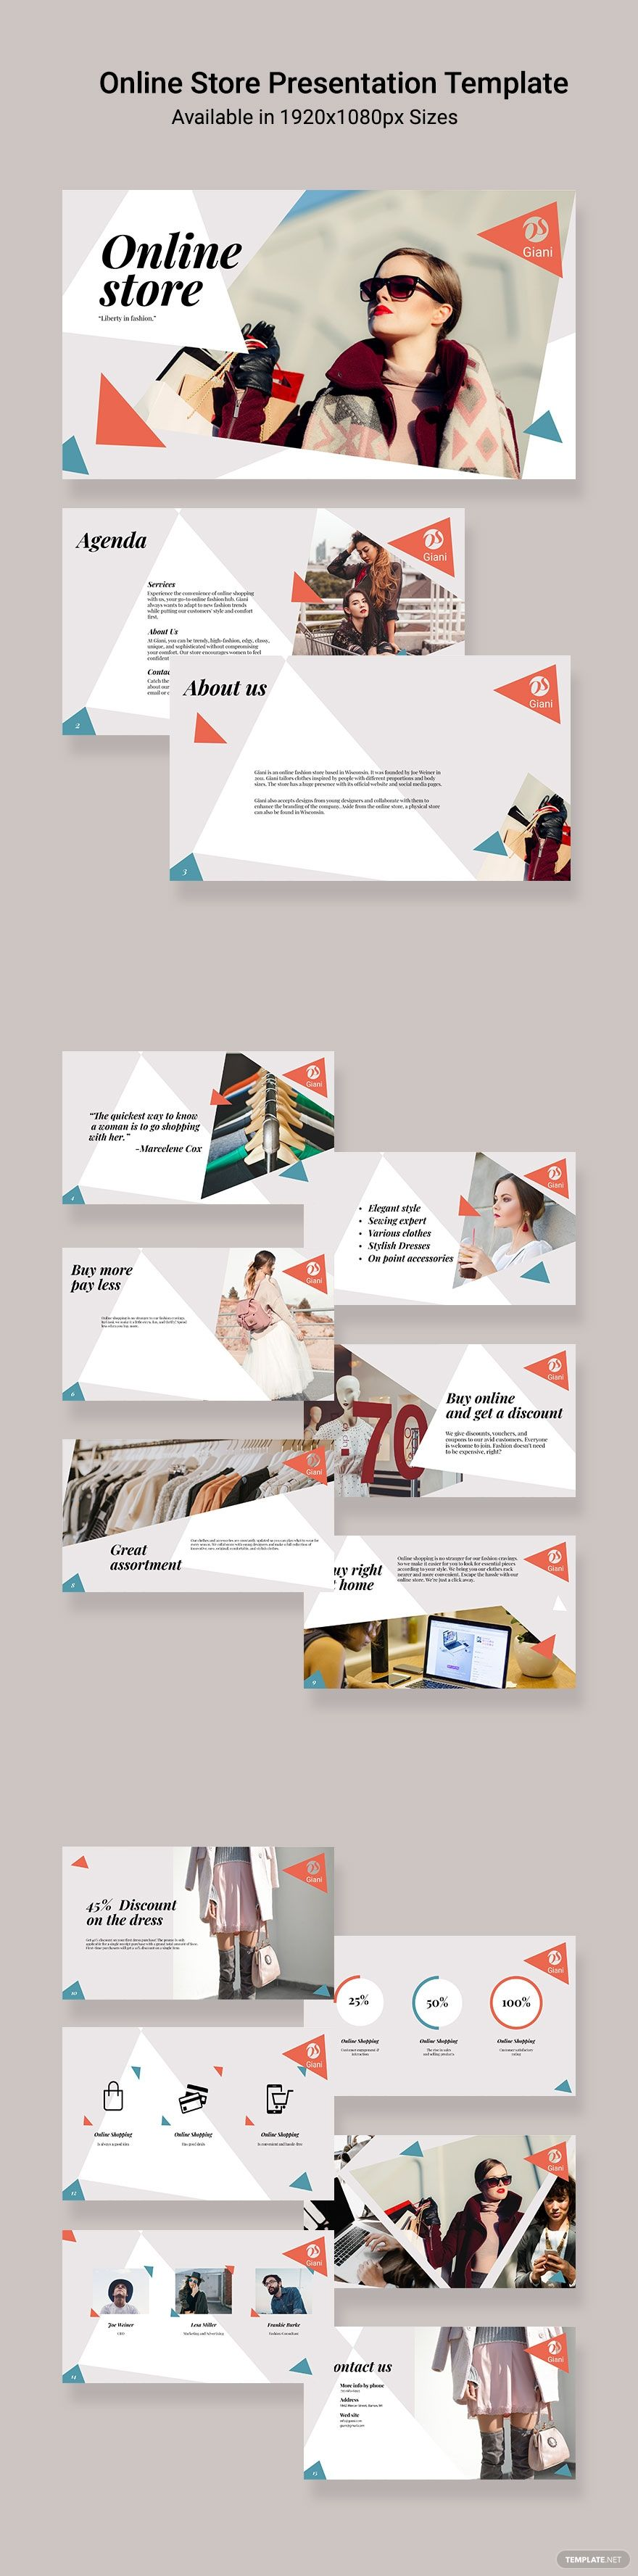 Online Store Presentation Template Pdf Word Apple Pages Google Docs Powerpoint Apple Keynote Presentation Templates Presentation Leaflet Template